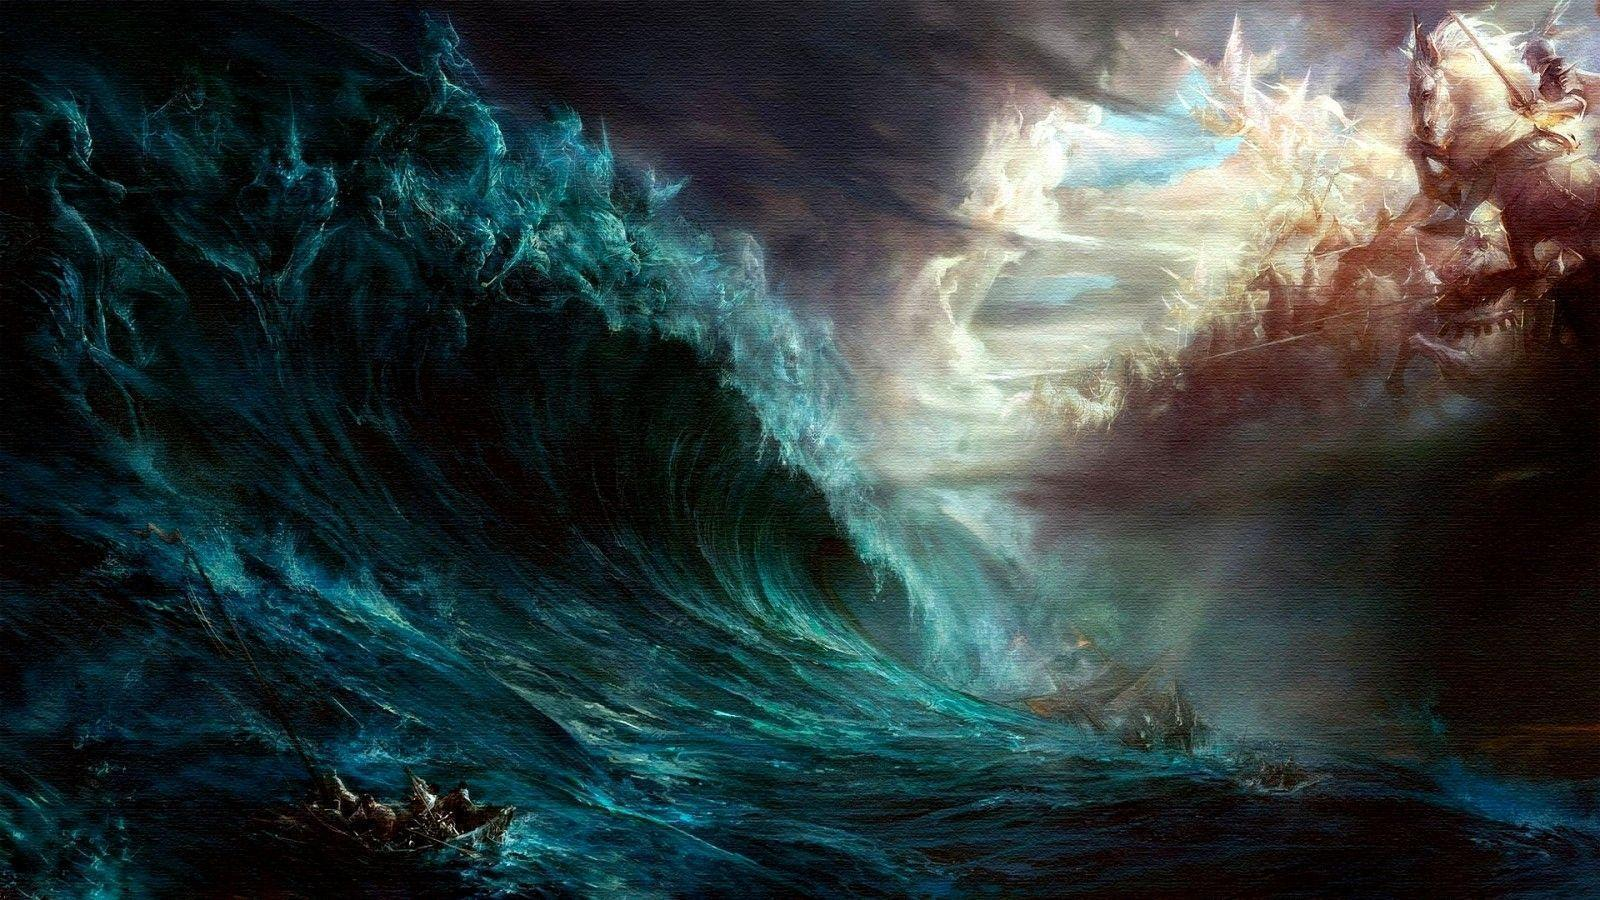 Tsunami pictures hd wallpapers 7 hd wallpapers